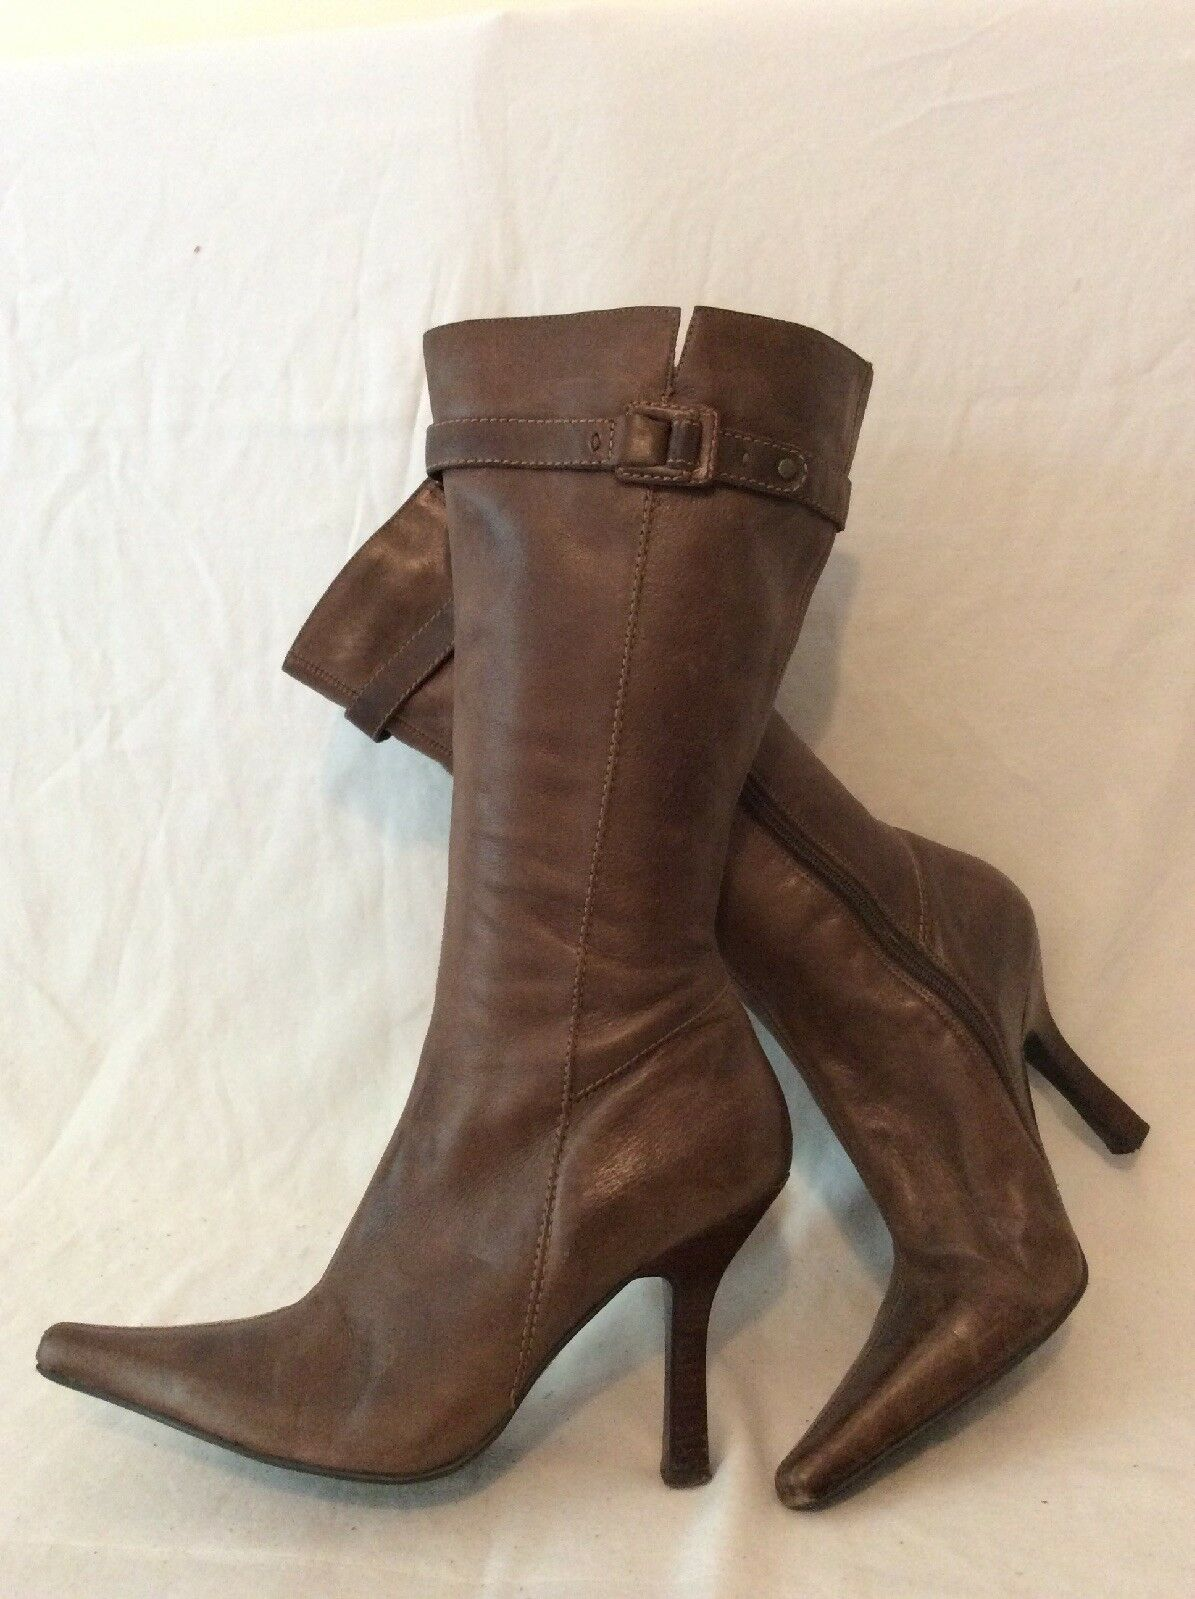 Lilley&Skinner Brown Mid Calf Leather Boots Size 7